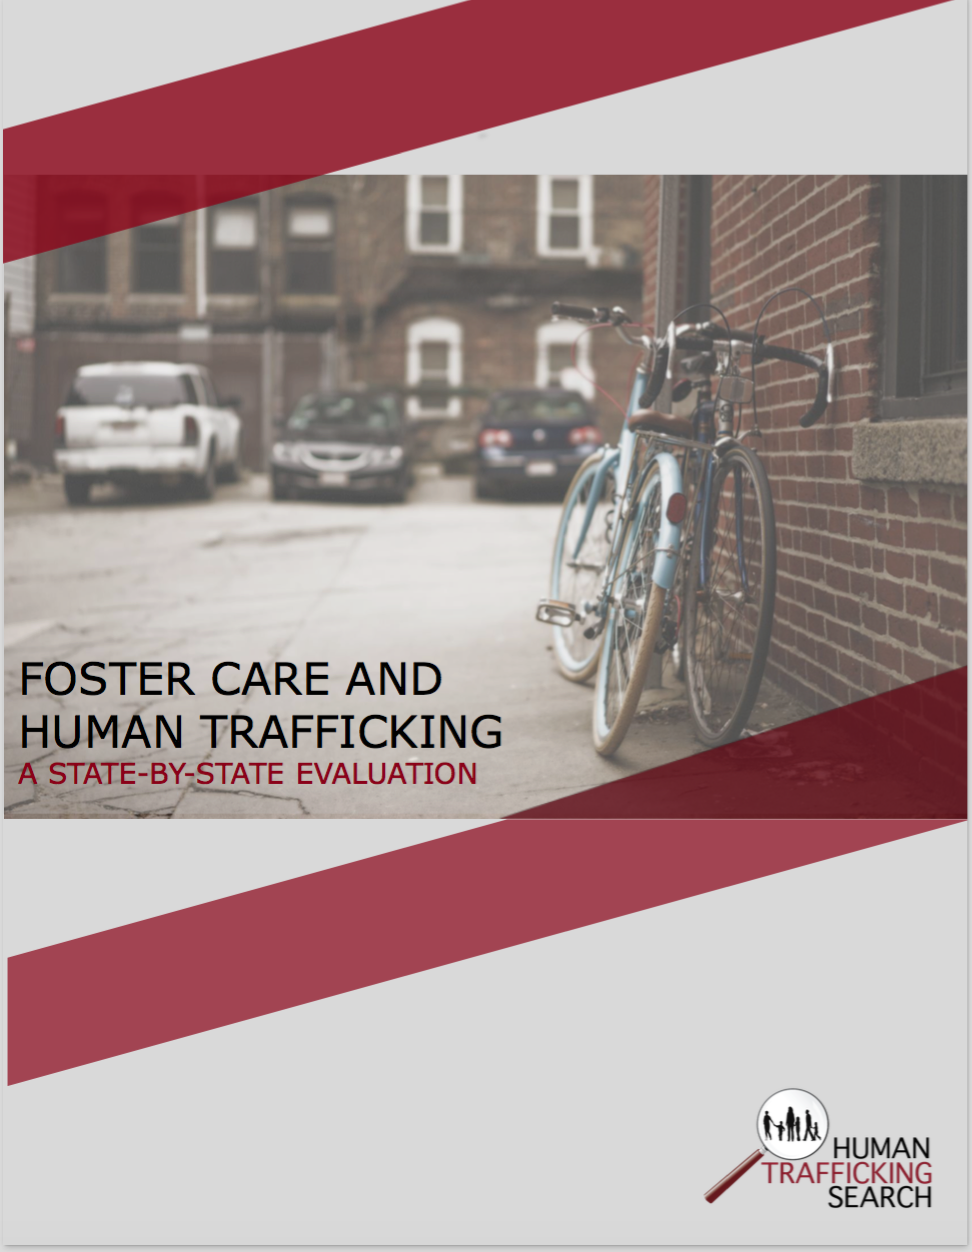 Foster Care and Human Trafficking: A State-by-State Evaluation